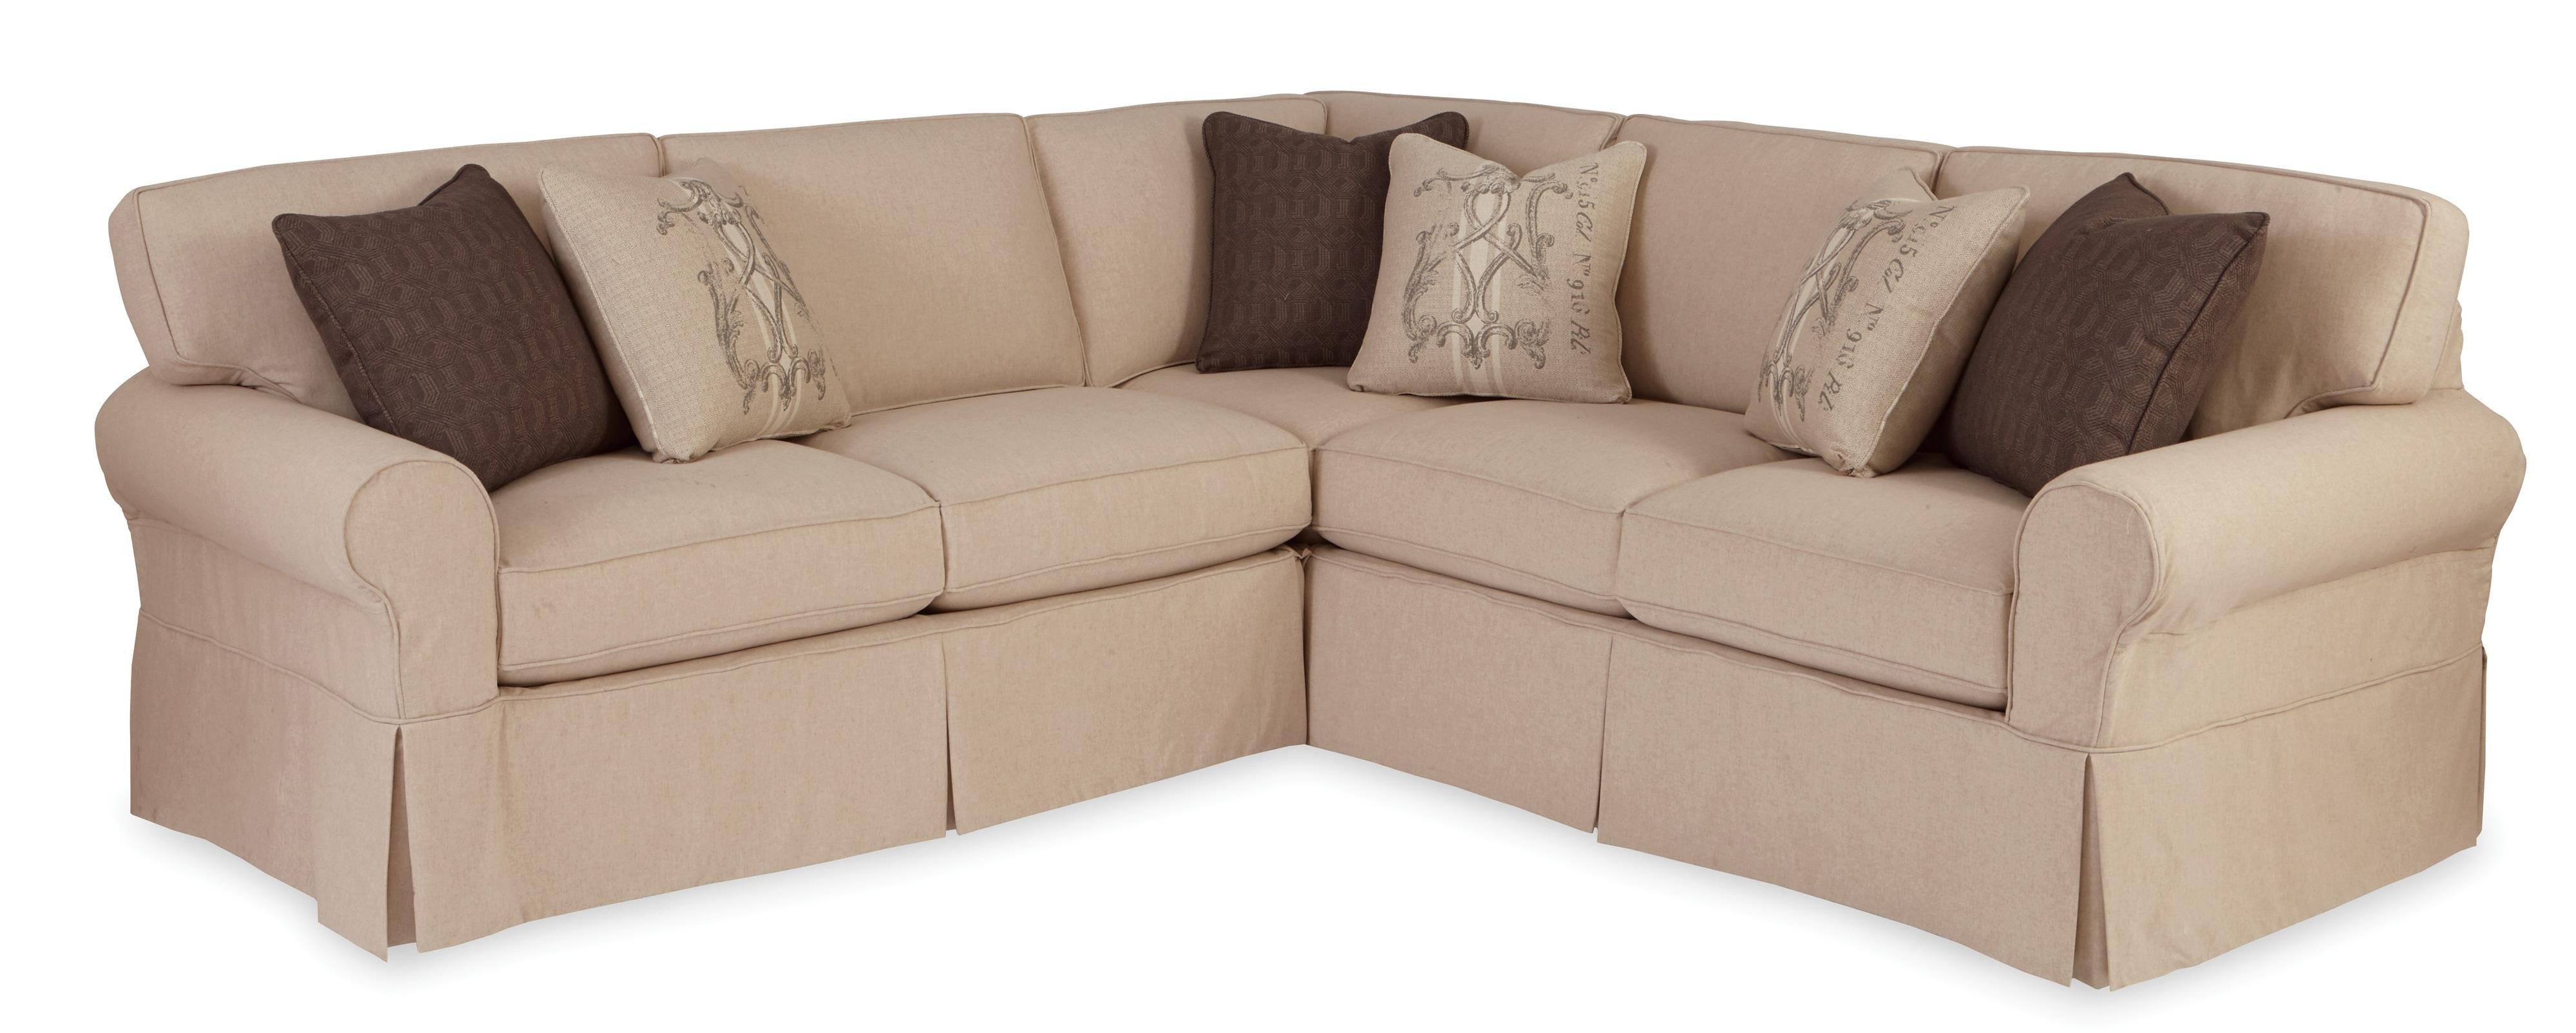 furniture loveseat slipcovers slipcovers for couch and loveseat with regard to sofa loveseat slipcovers